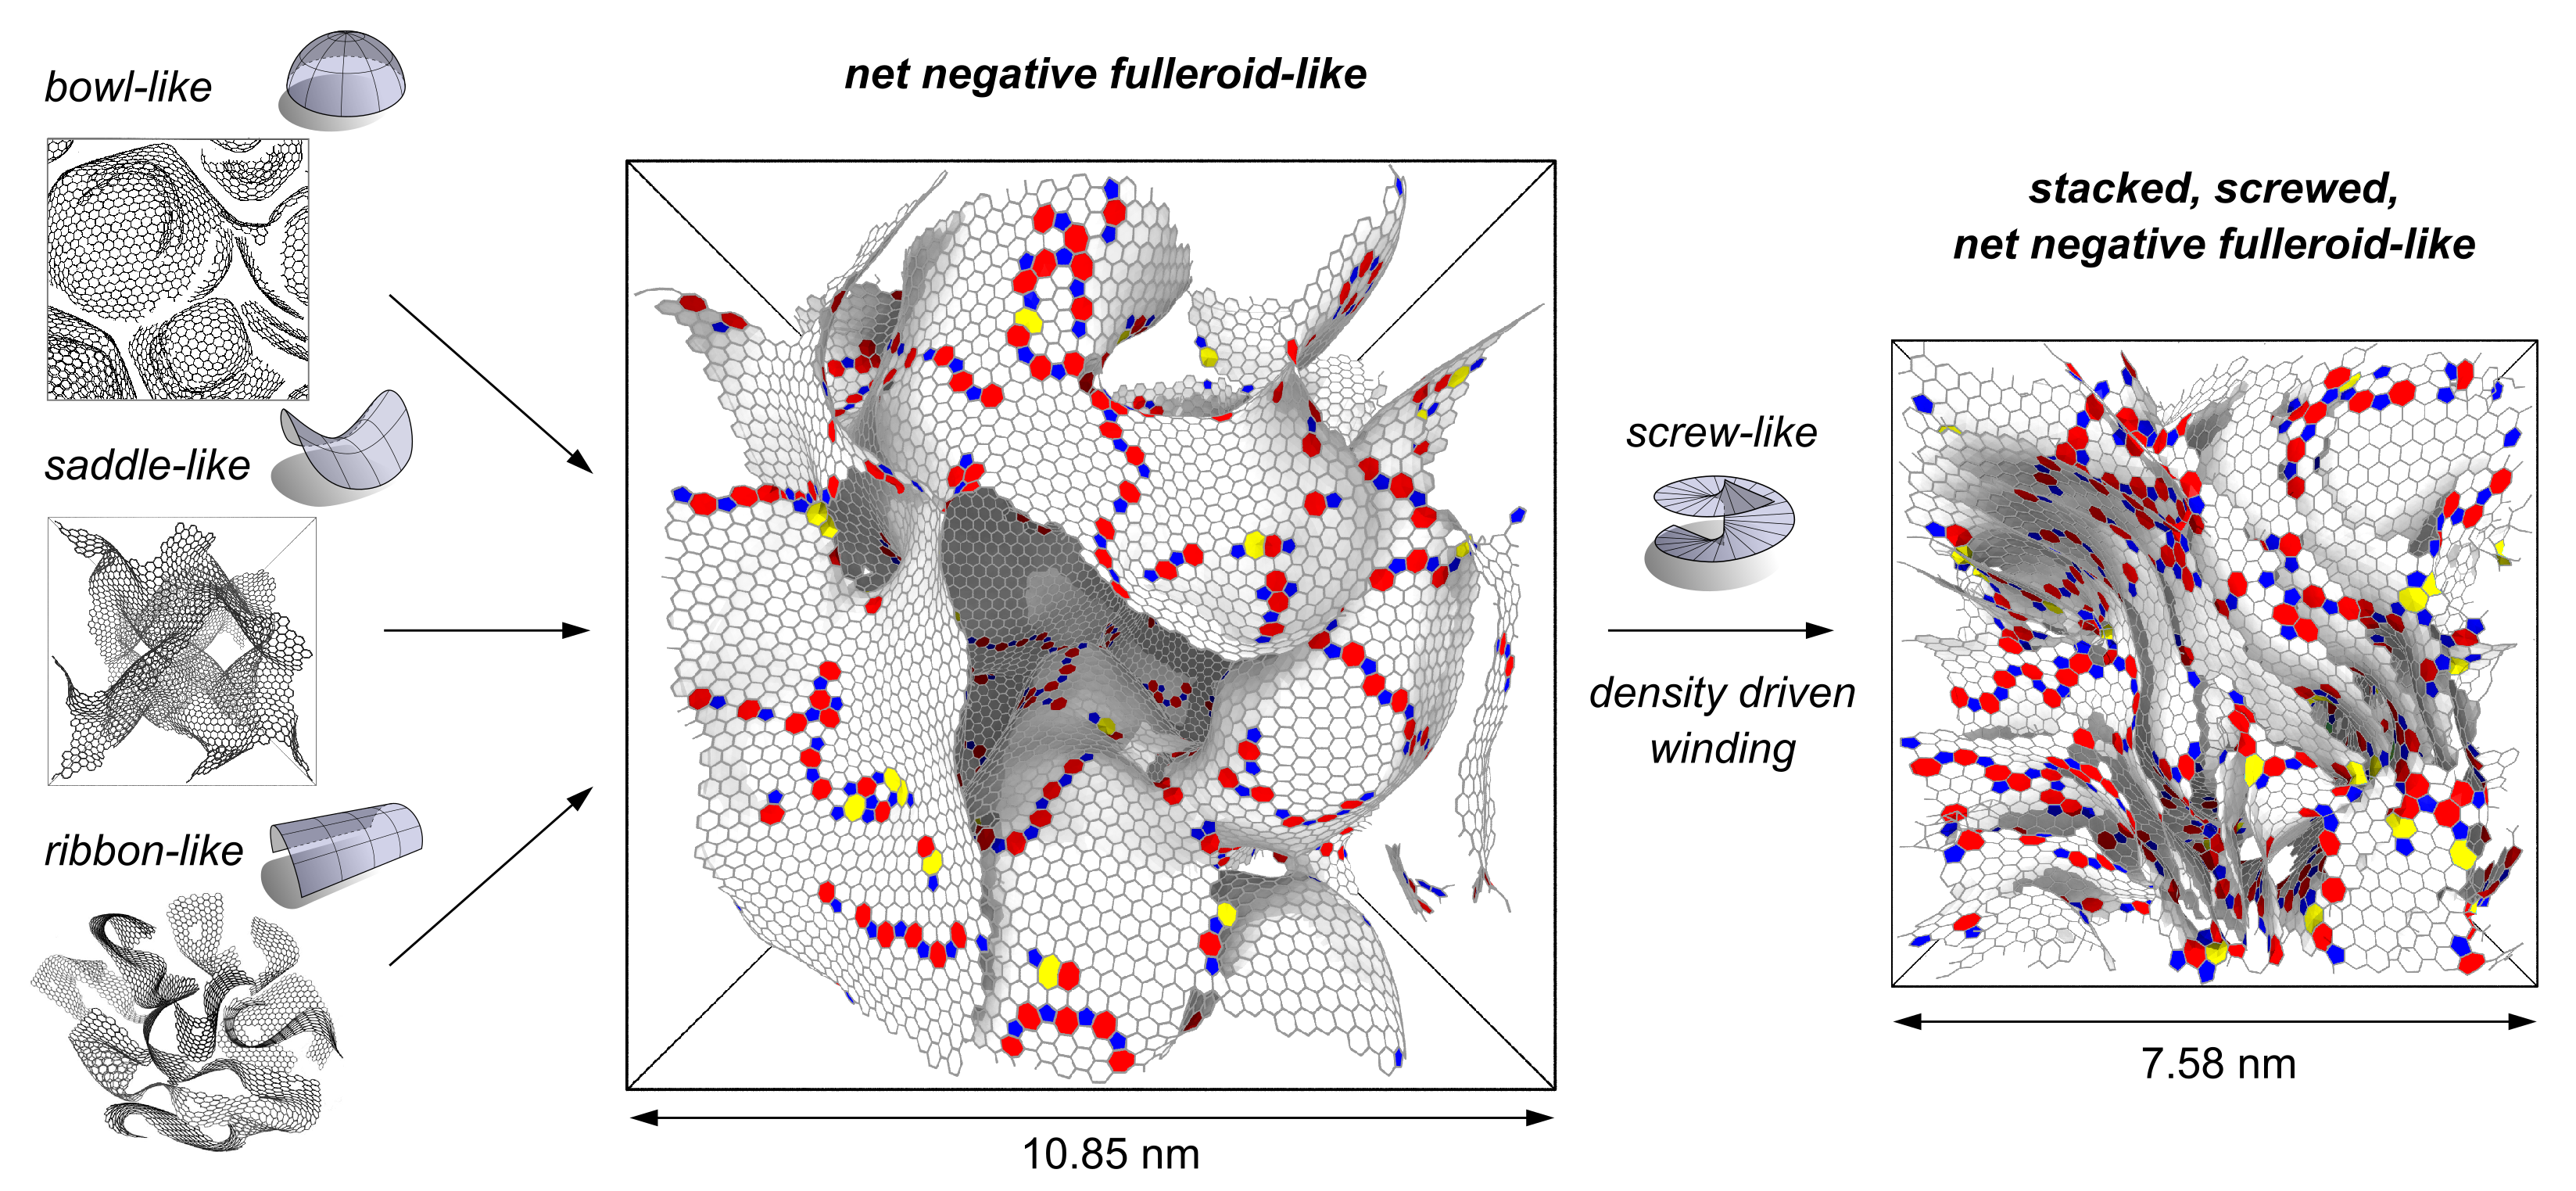 New nanostructure proposed for disordered 3D graphenes with bowl, saddle and ribbon-like graphene sheets. Increasing density screw dislocations allow for winding up and layering of the network.